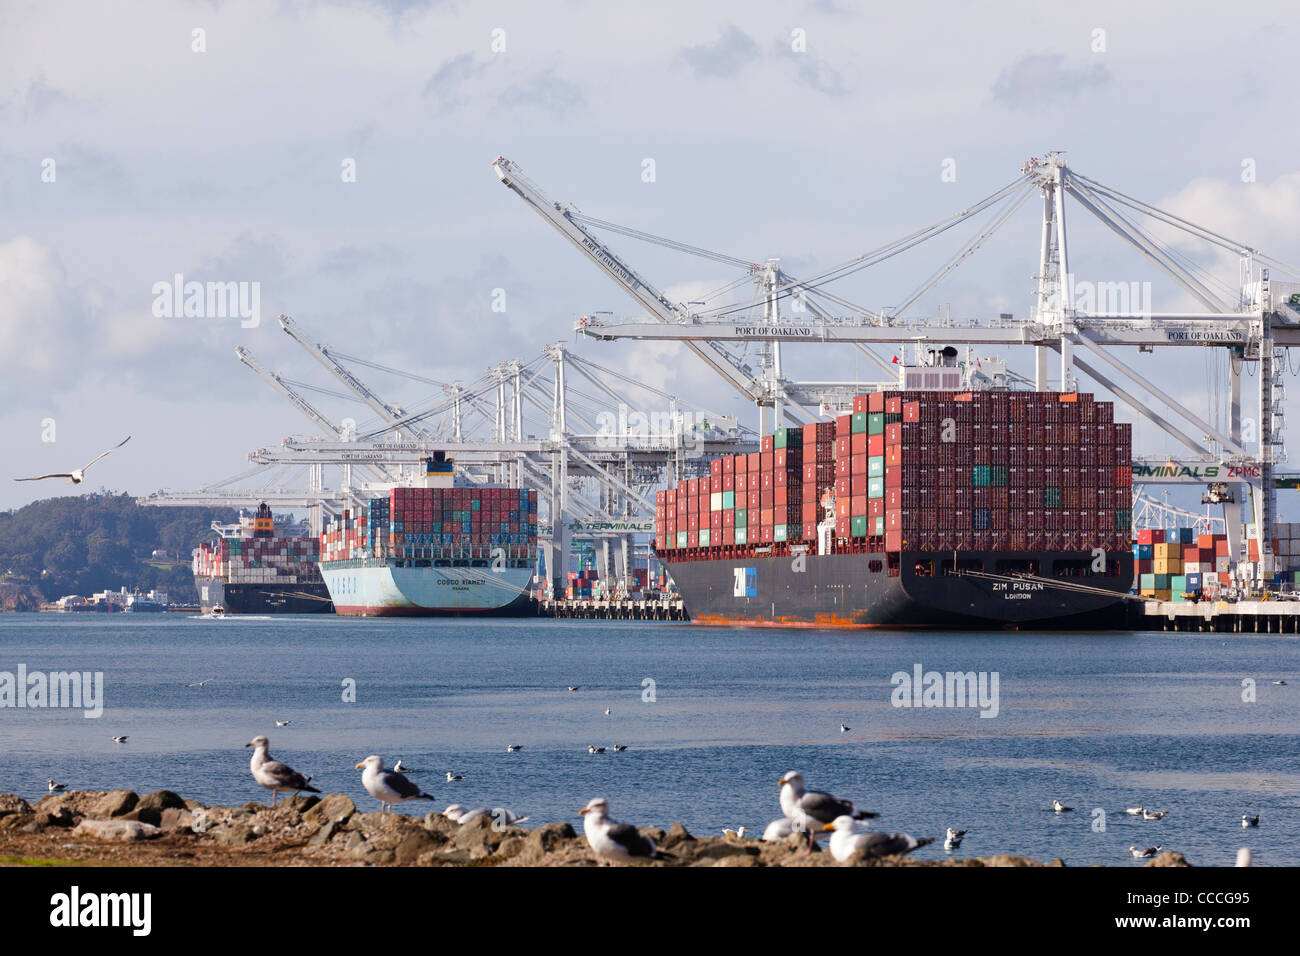 Container ships wait unloading at Port of Oakland - California USA - Stock Image